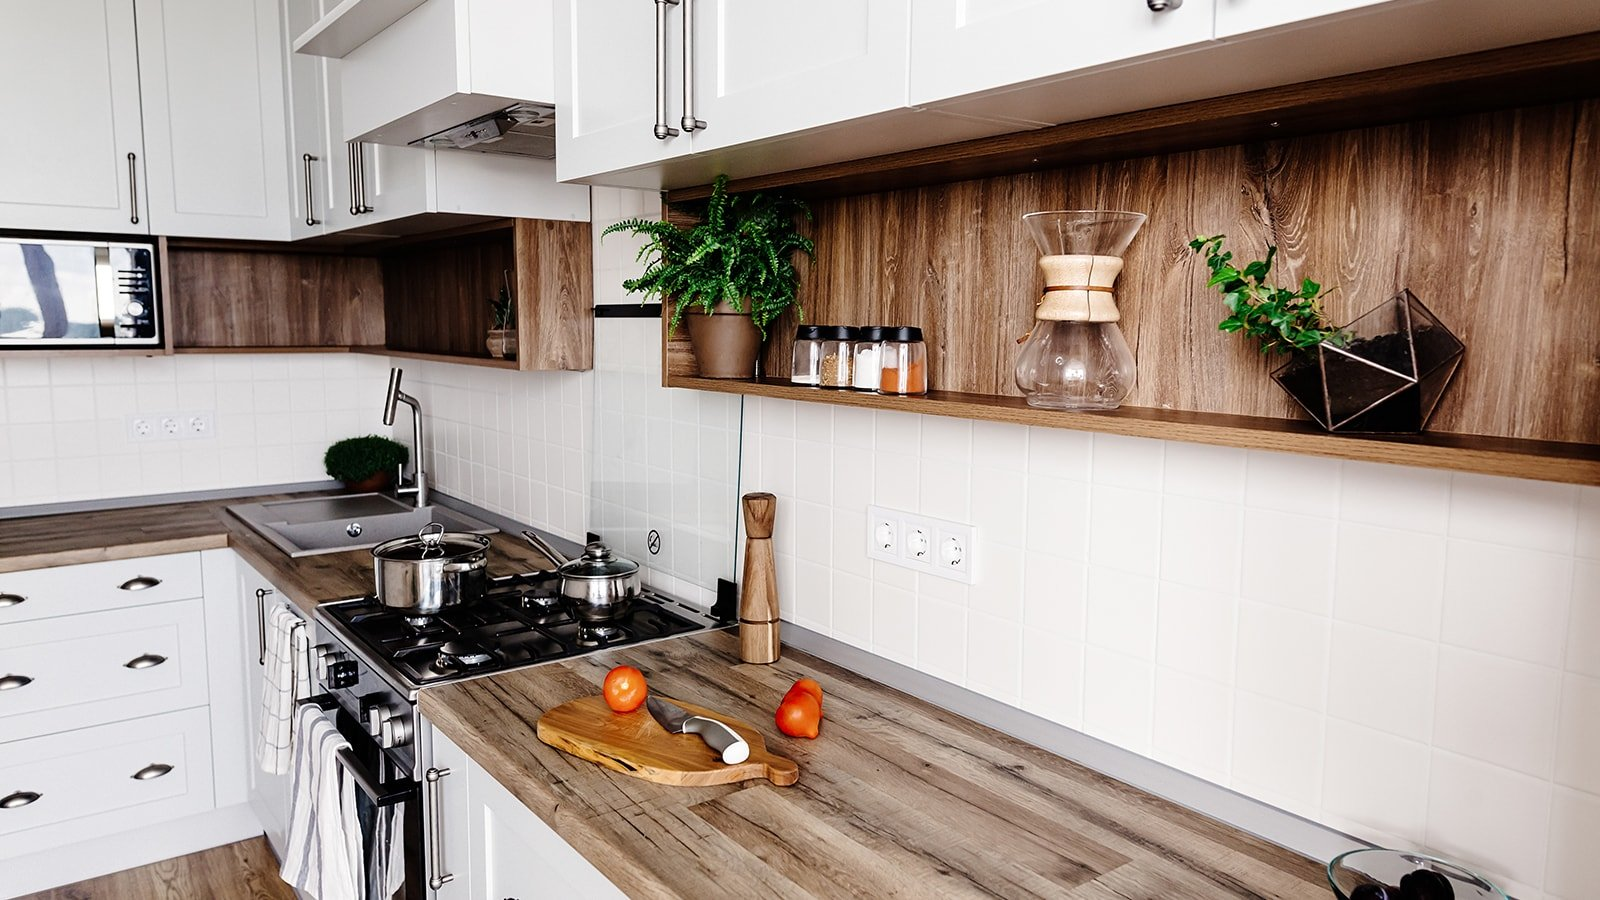 Stylish kitchen with no pests